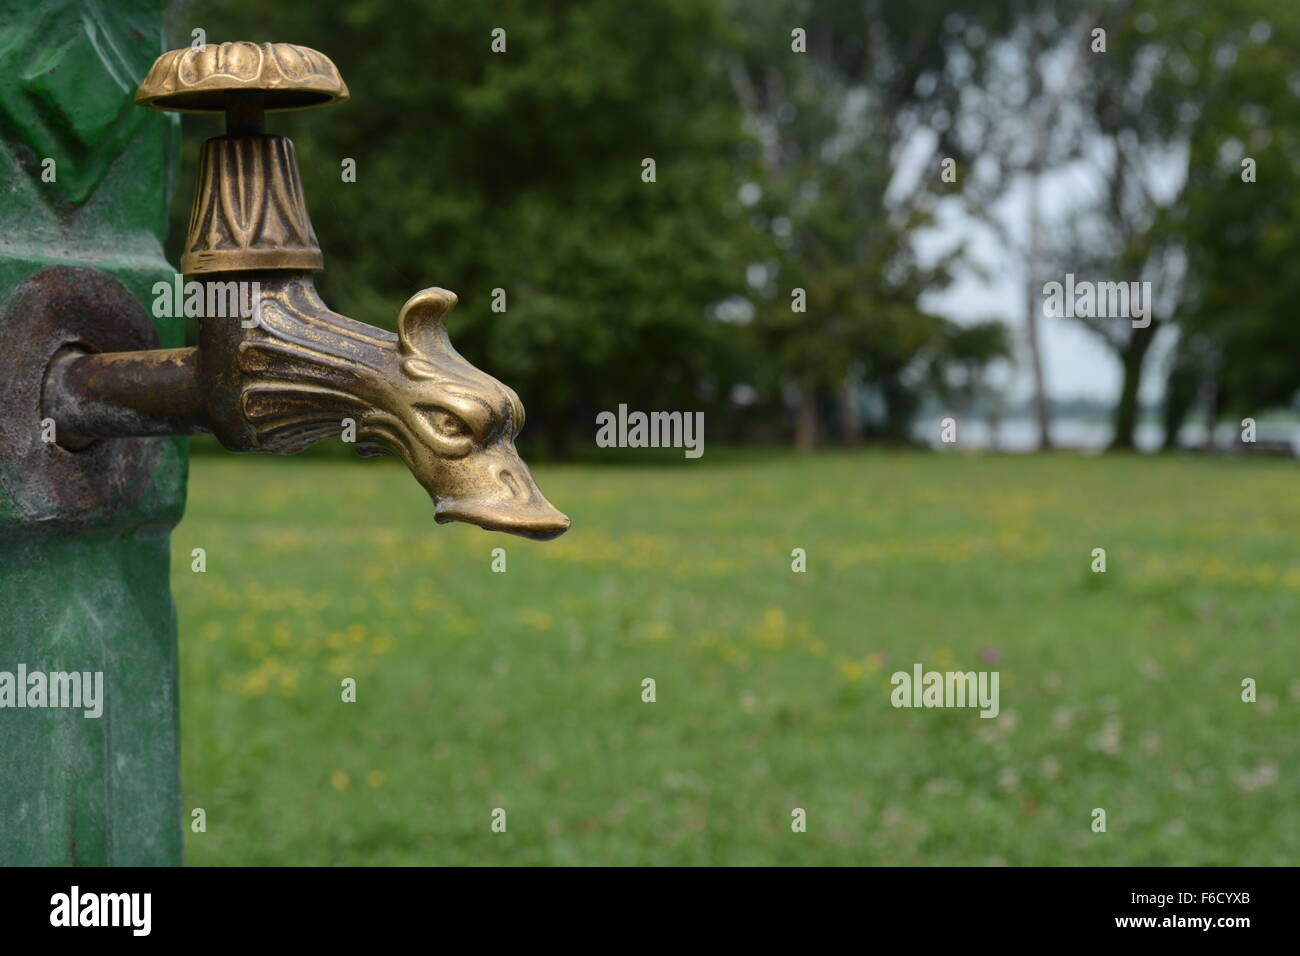 Brass dragon water tap in park without water - Stock Image